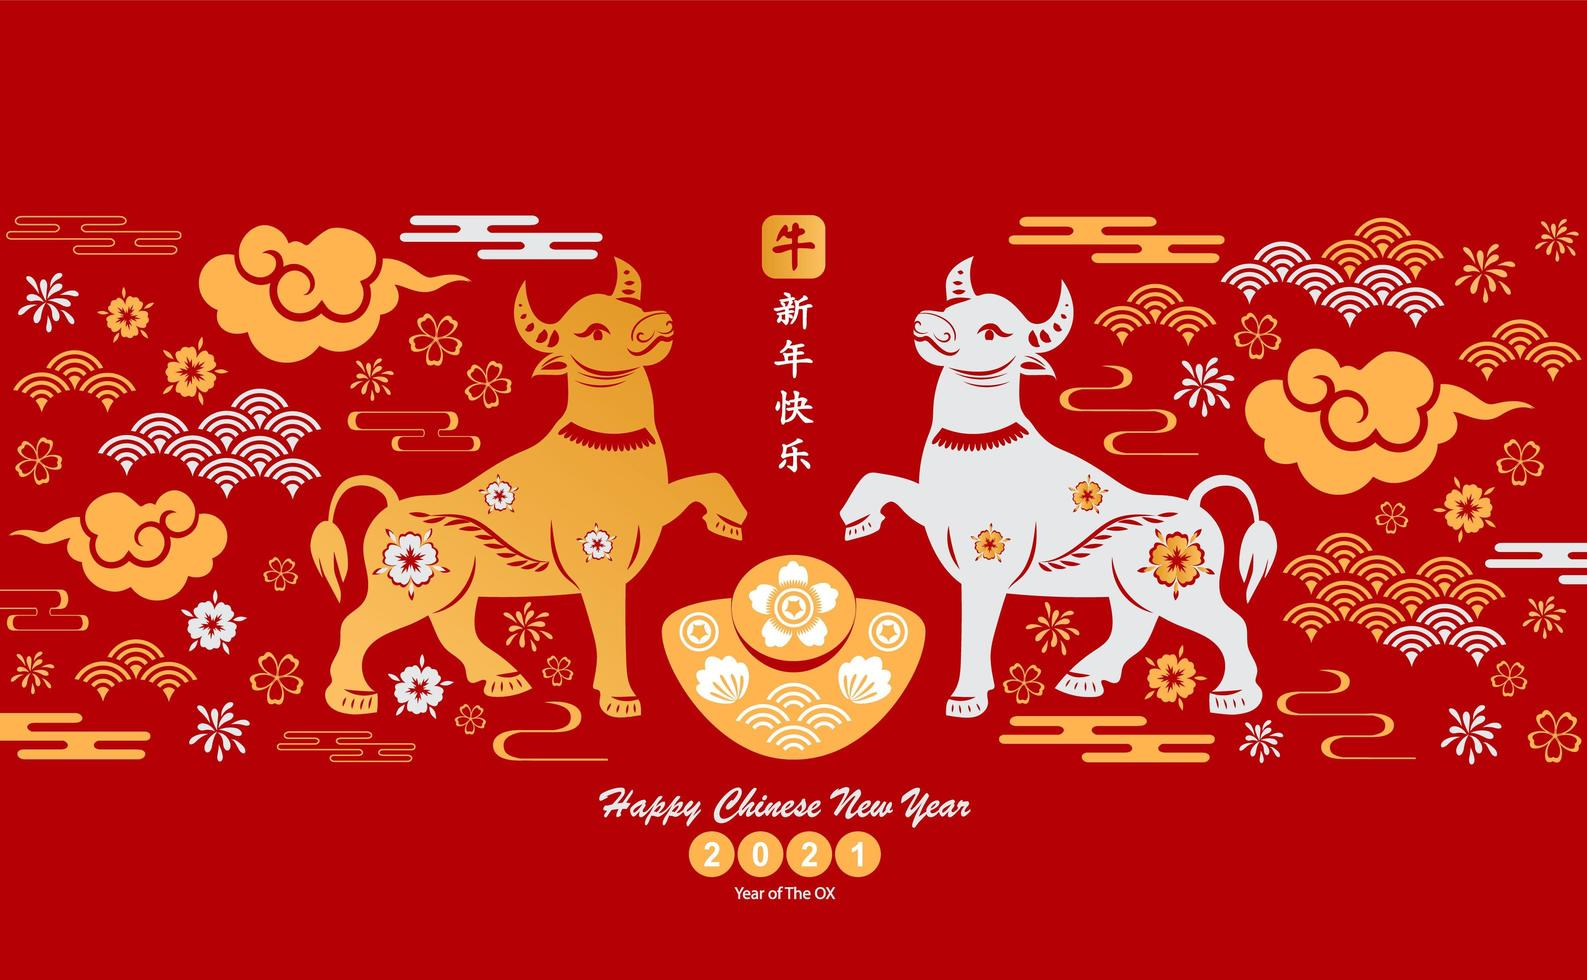 Chinese new year design with ox and Asian elements vector